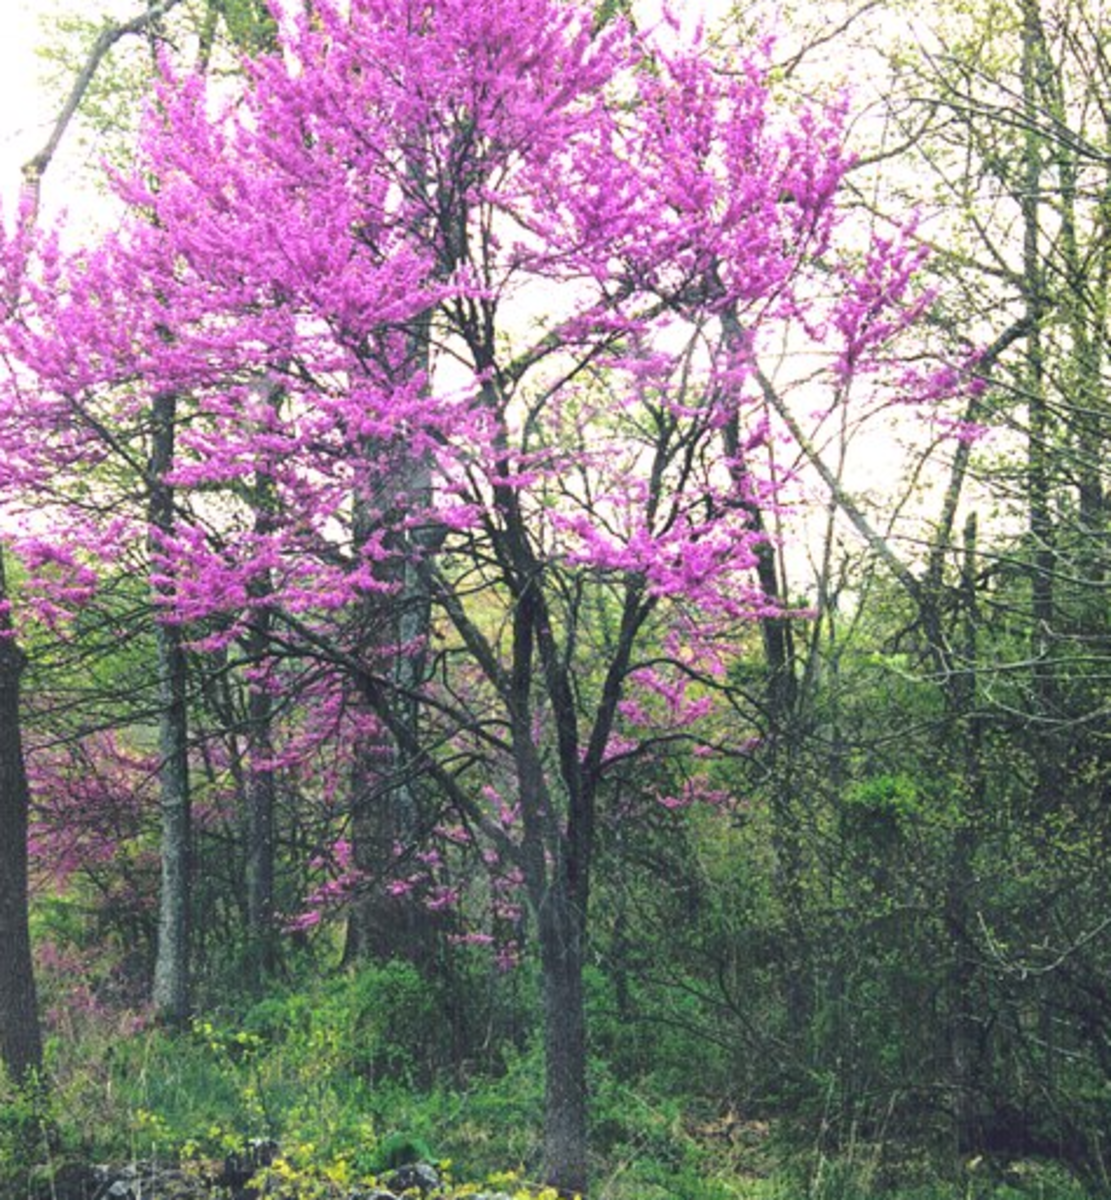 Wild Redbud Tree in Oklahoma, U.S. – State Tree of Oklahoma